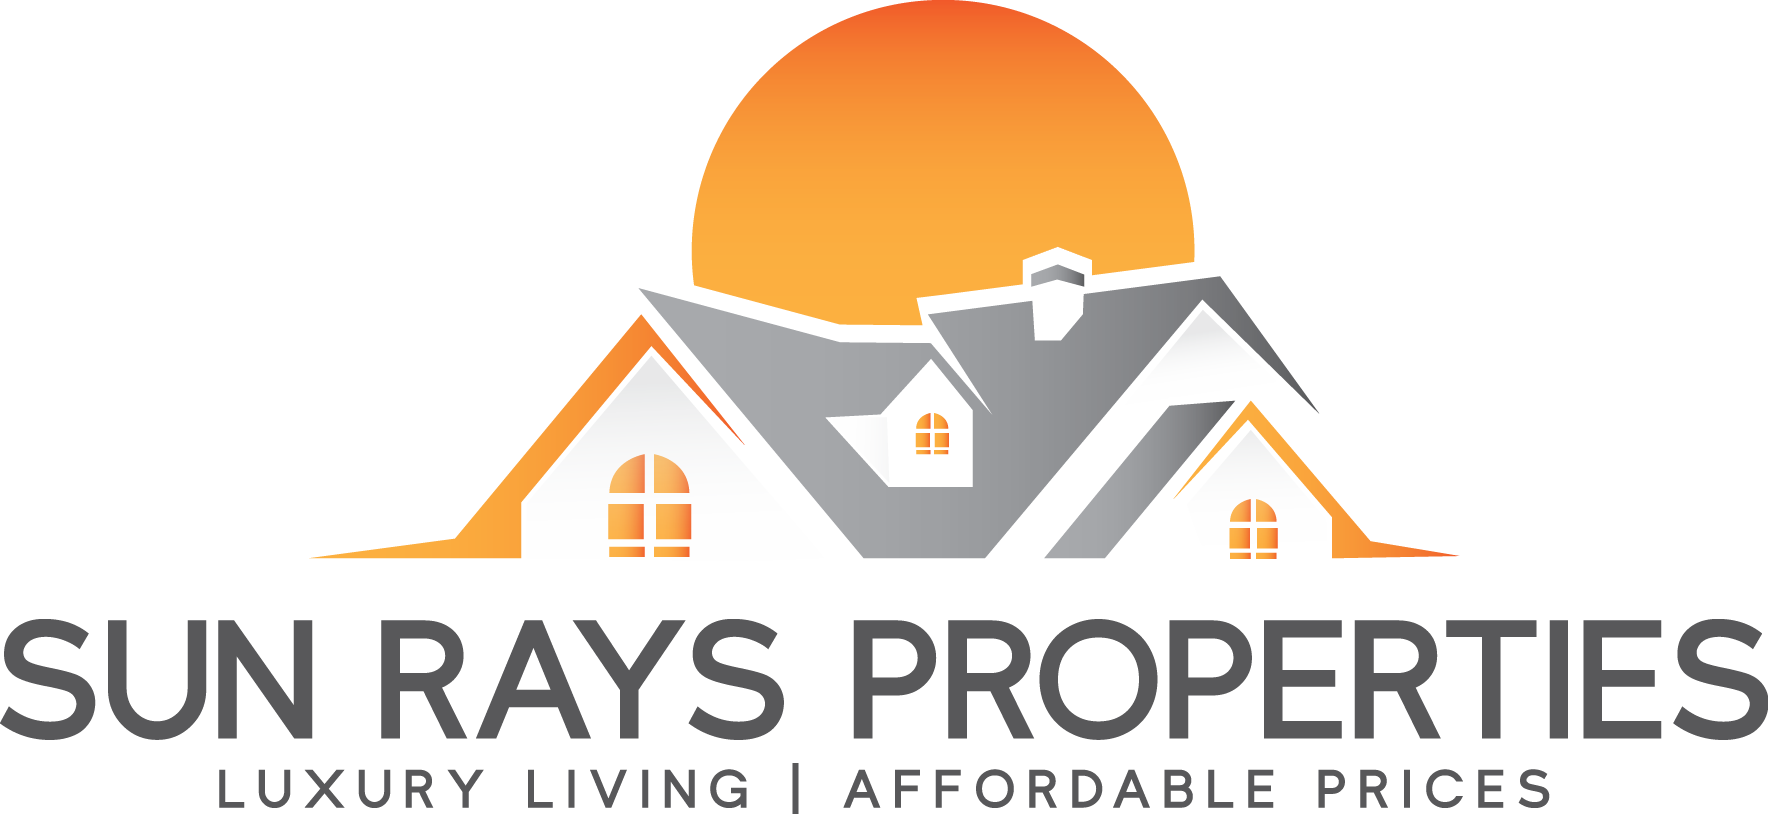 sunraysproperties